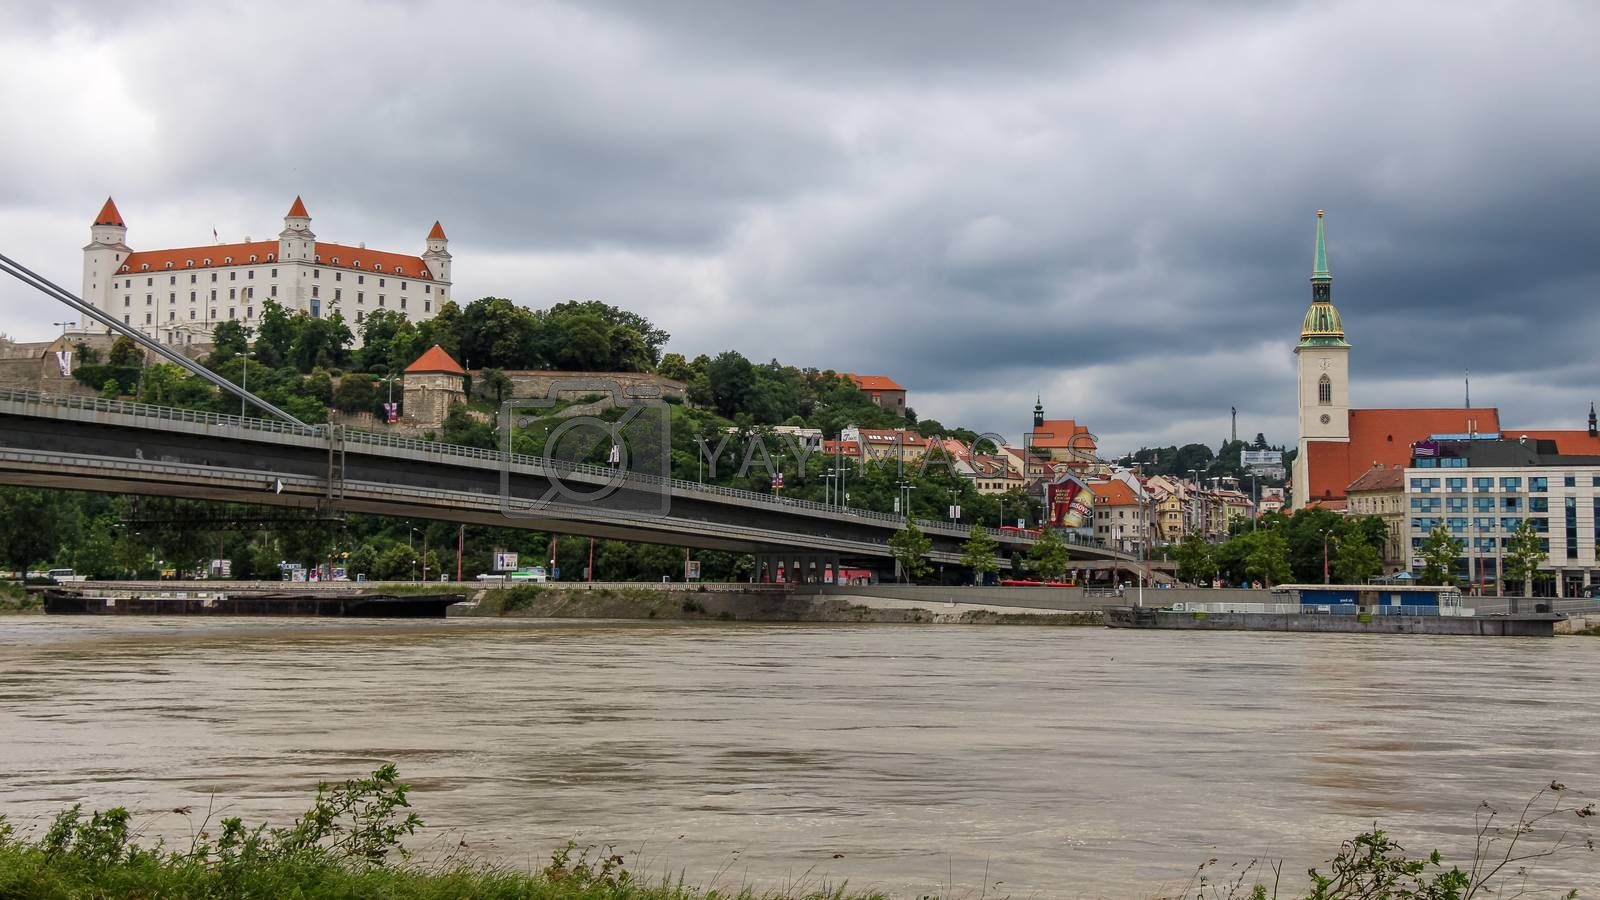 Bratislava, Slovakia - July 5th 2020: Bratislava Castle over looking the River Danube and the Most SNP Bridge, in the old town, Slovakia